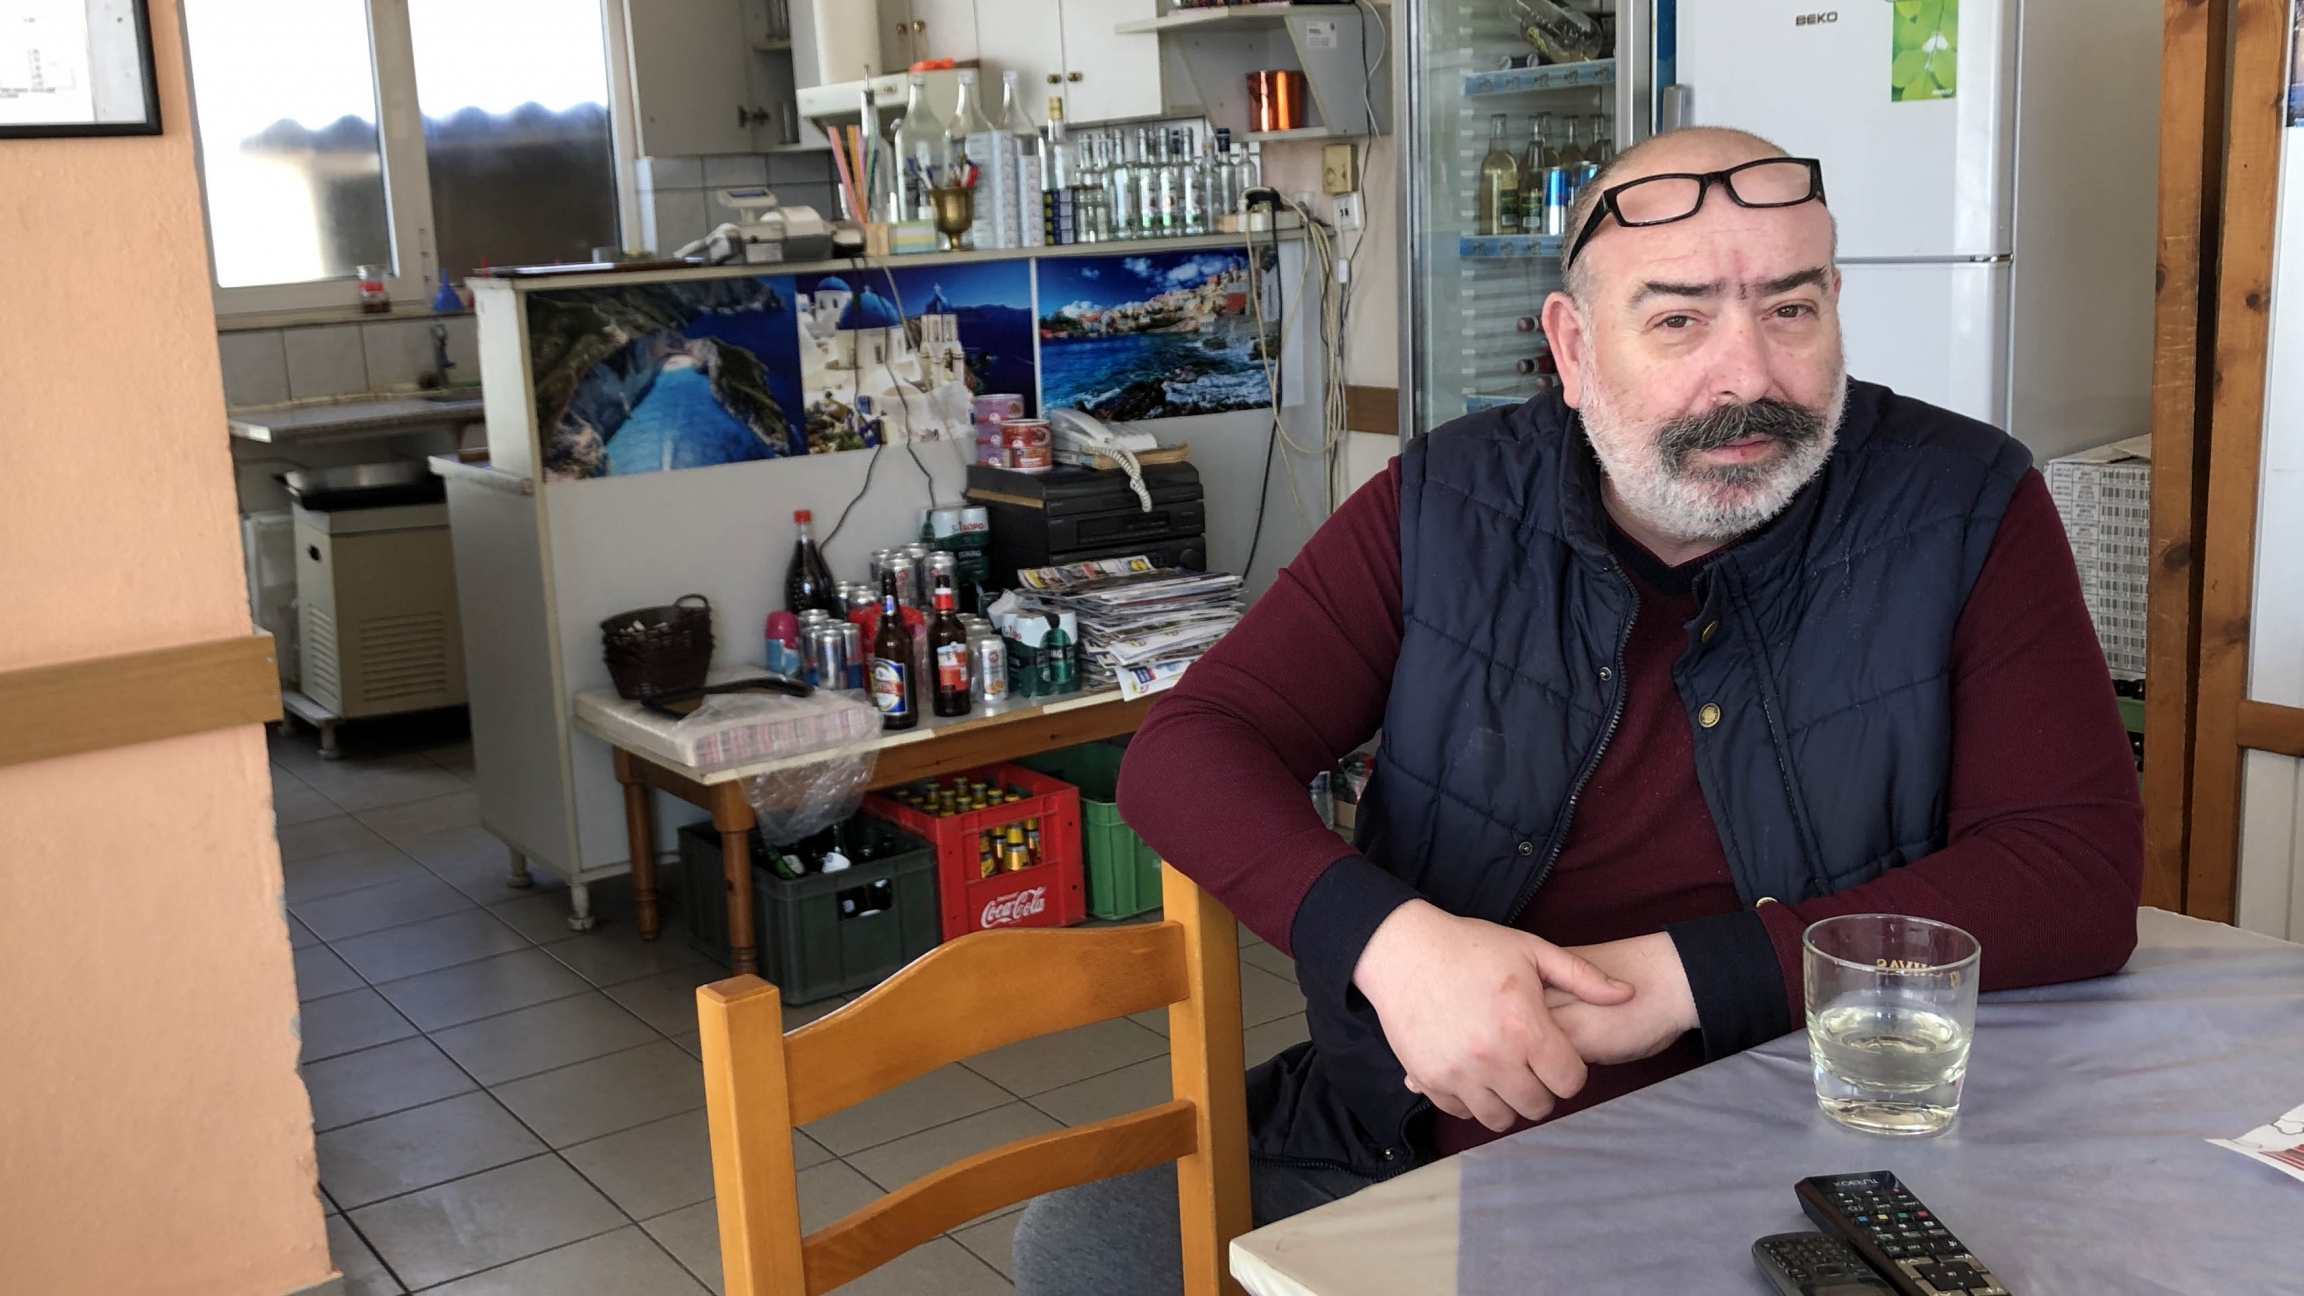 Stelios Panagos sits at his cafe inKastanies. On a typical day, the cafe is filled with local Greeksas well as Turks.